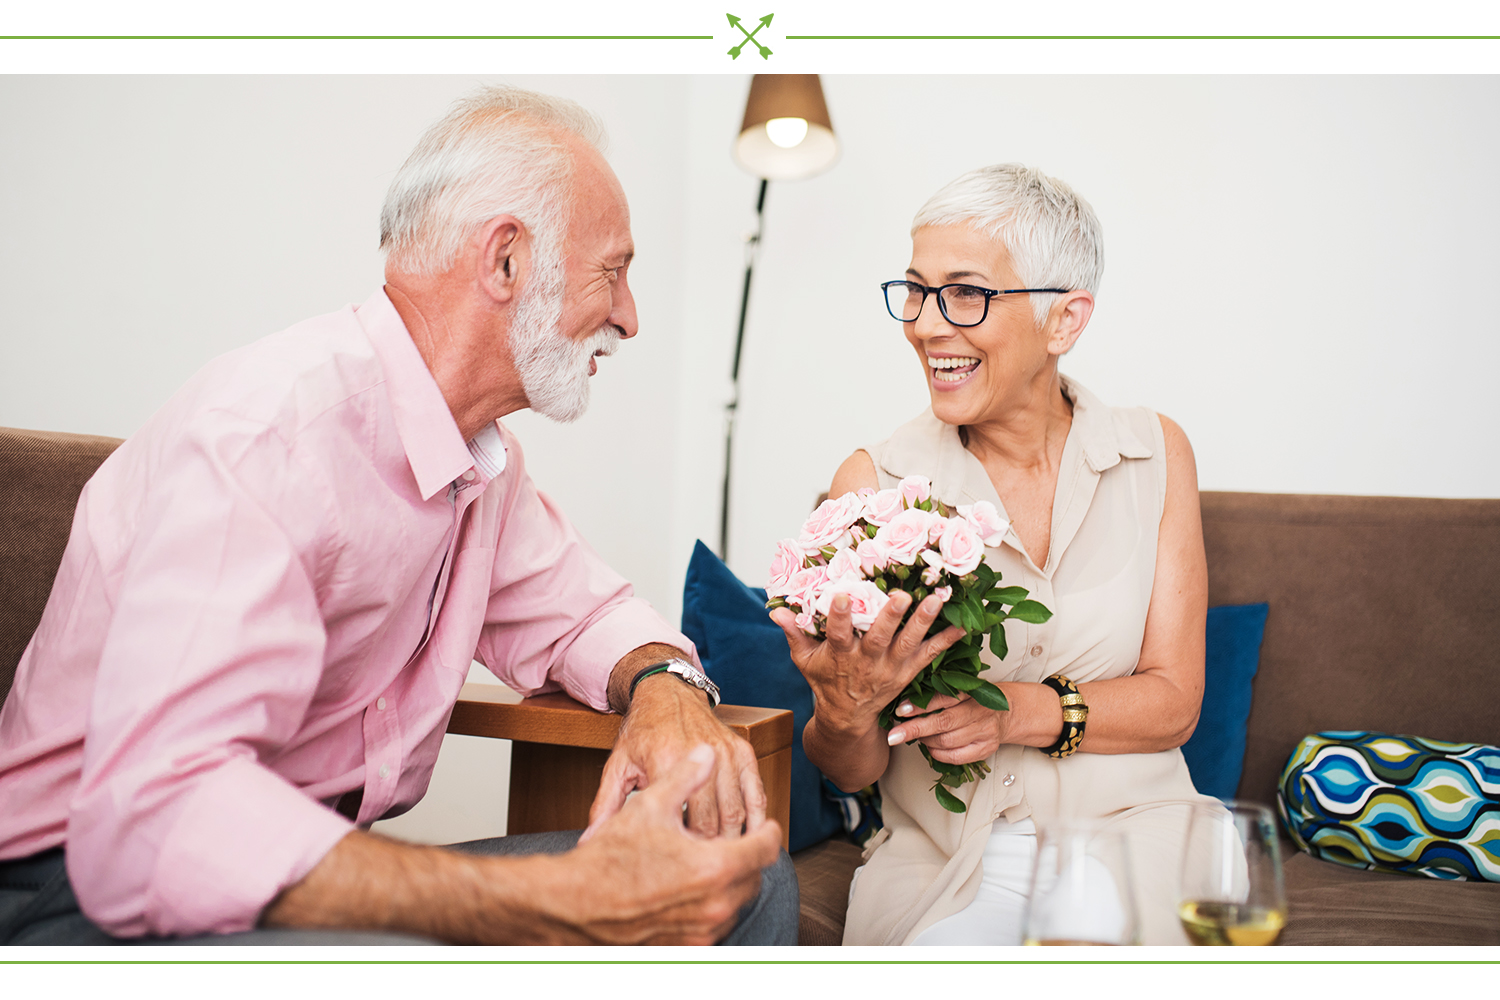 older couple exchanging gifts and flowers